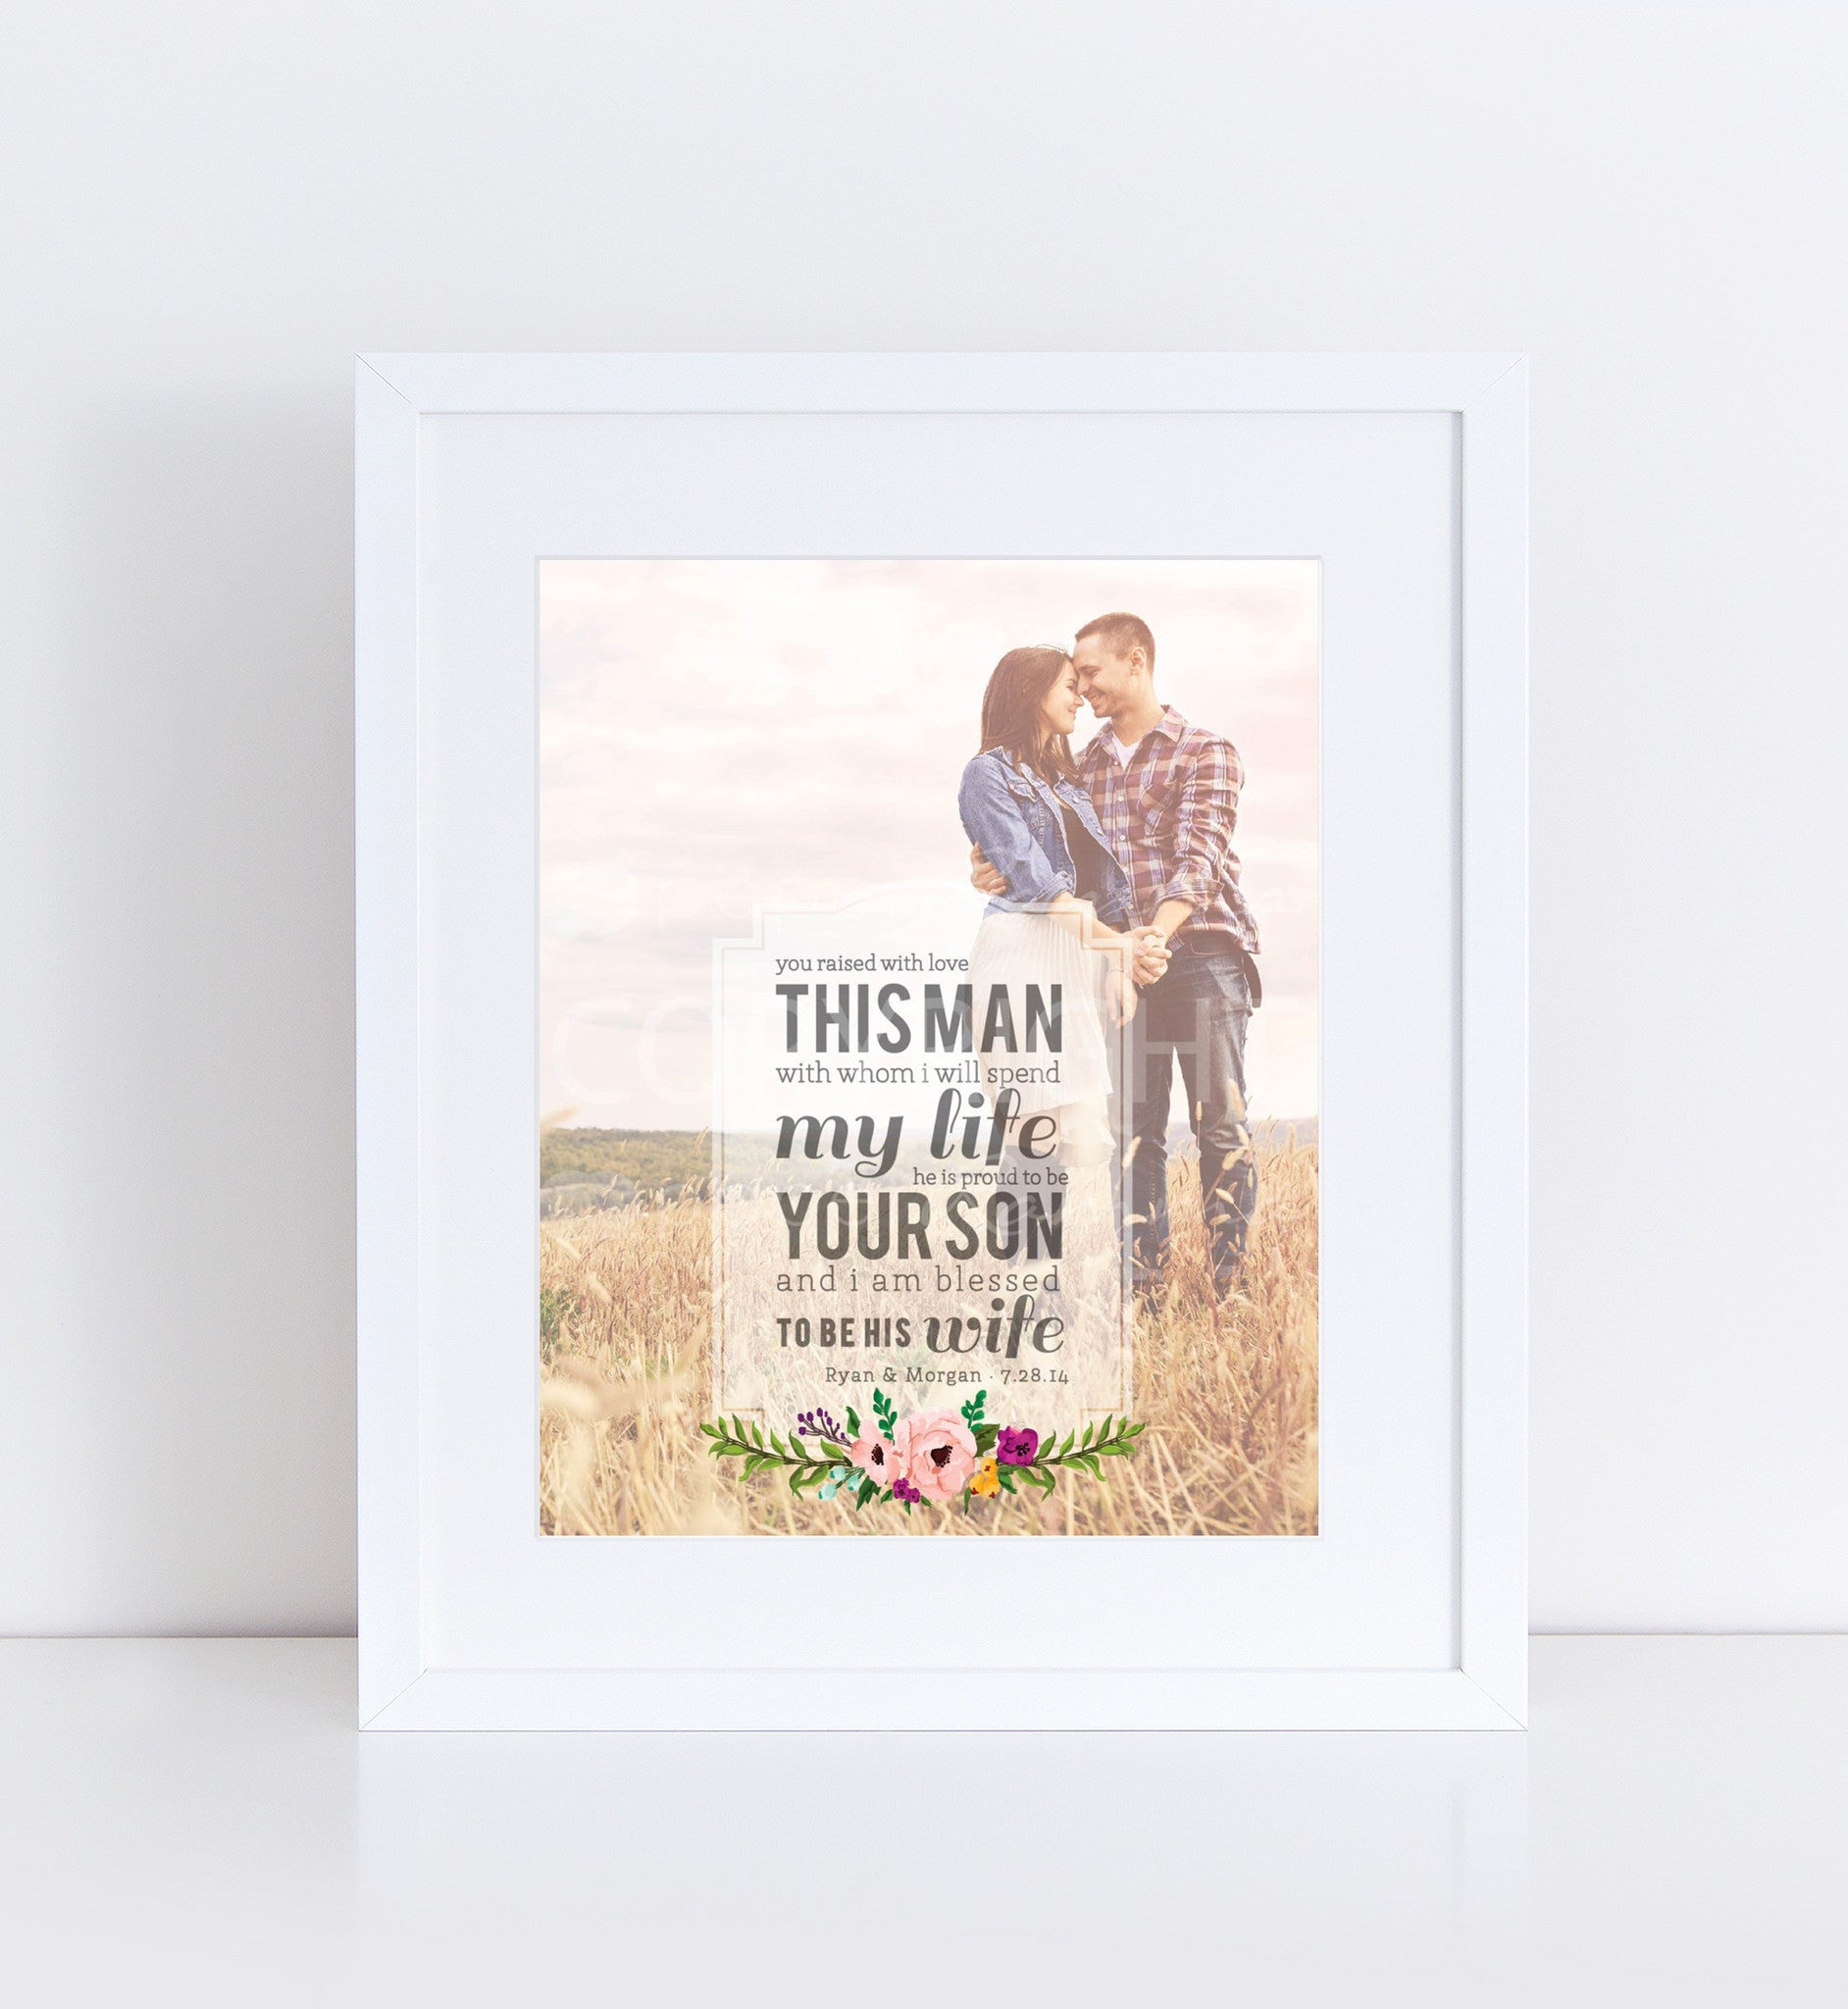 Man of my dreams parent 39 s wedding gift photo quote for Best gifts for parents for wedding